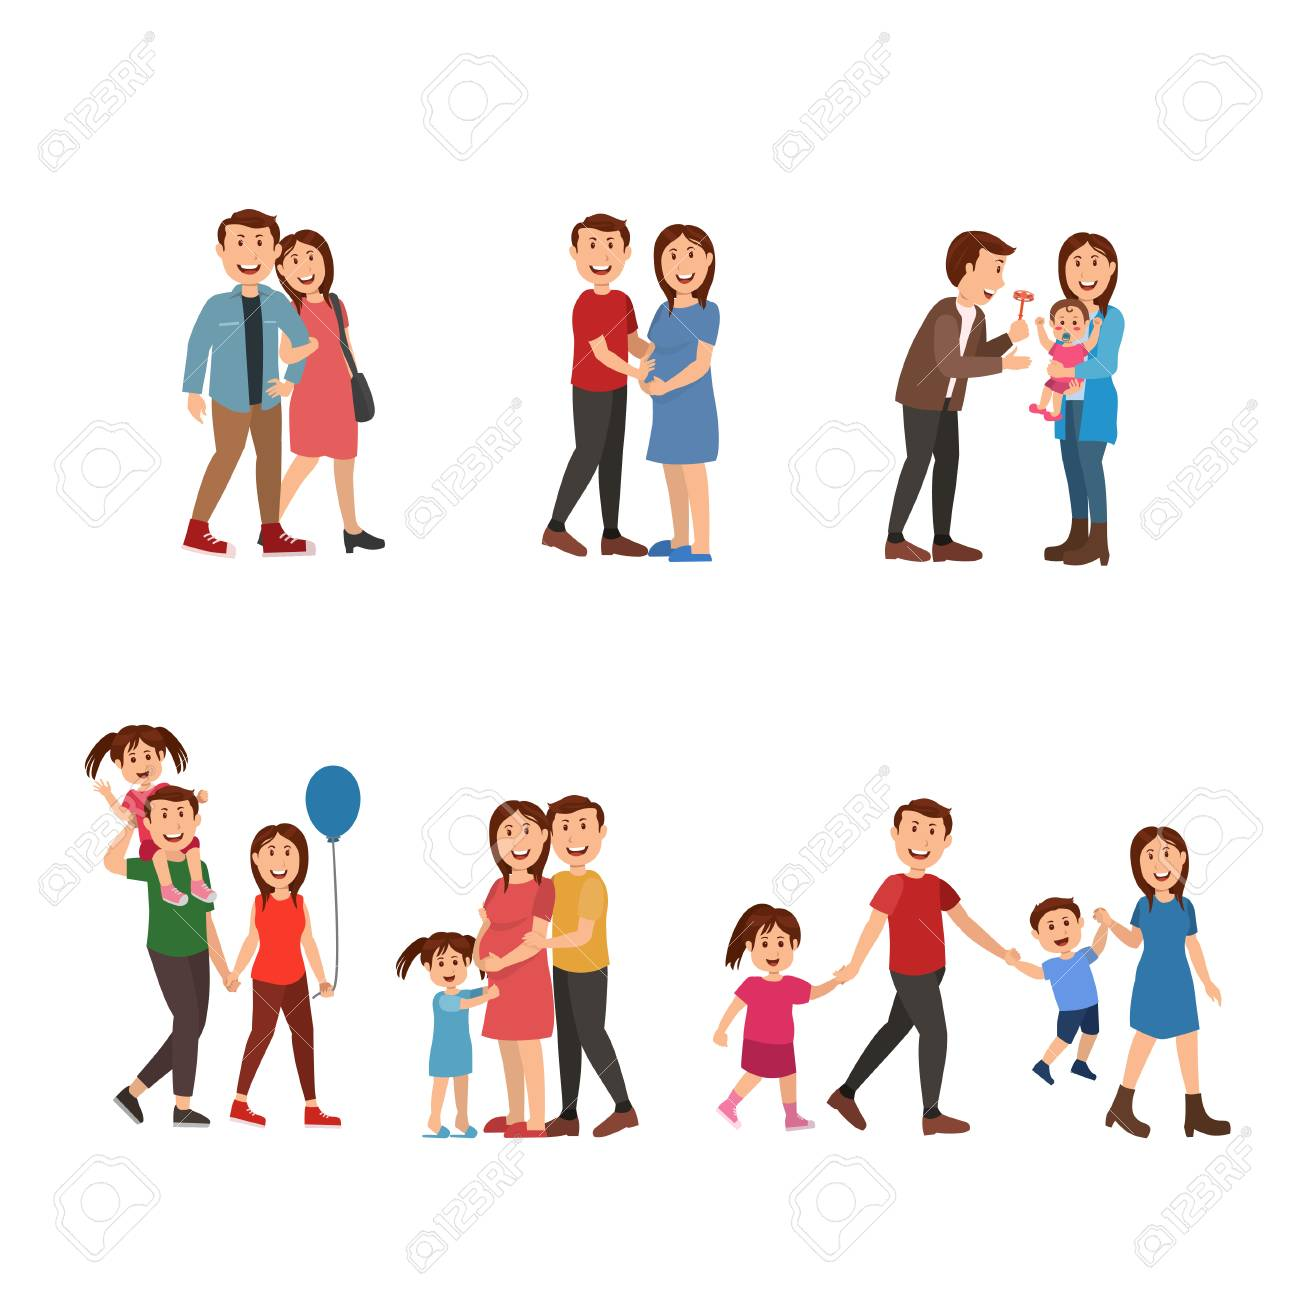 Happy family start from couple, married, have children  father,